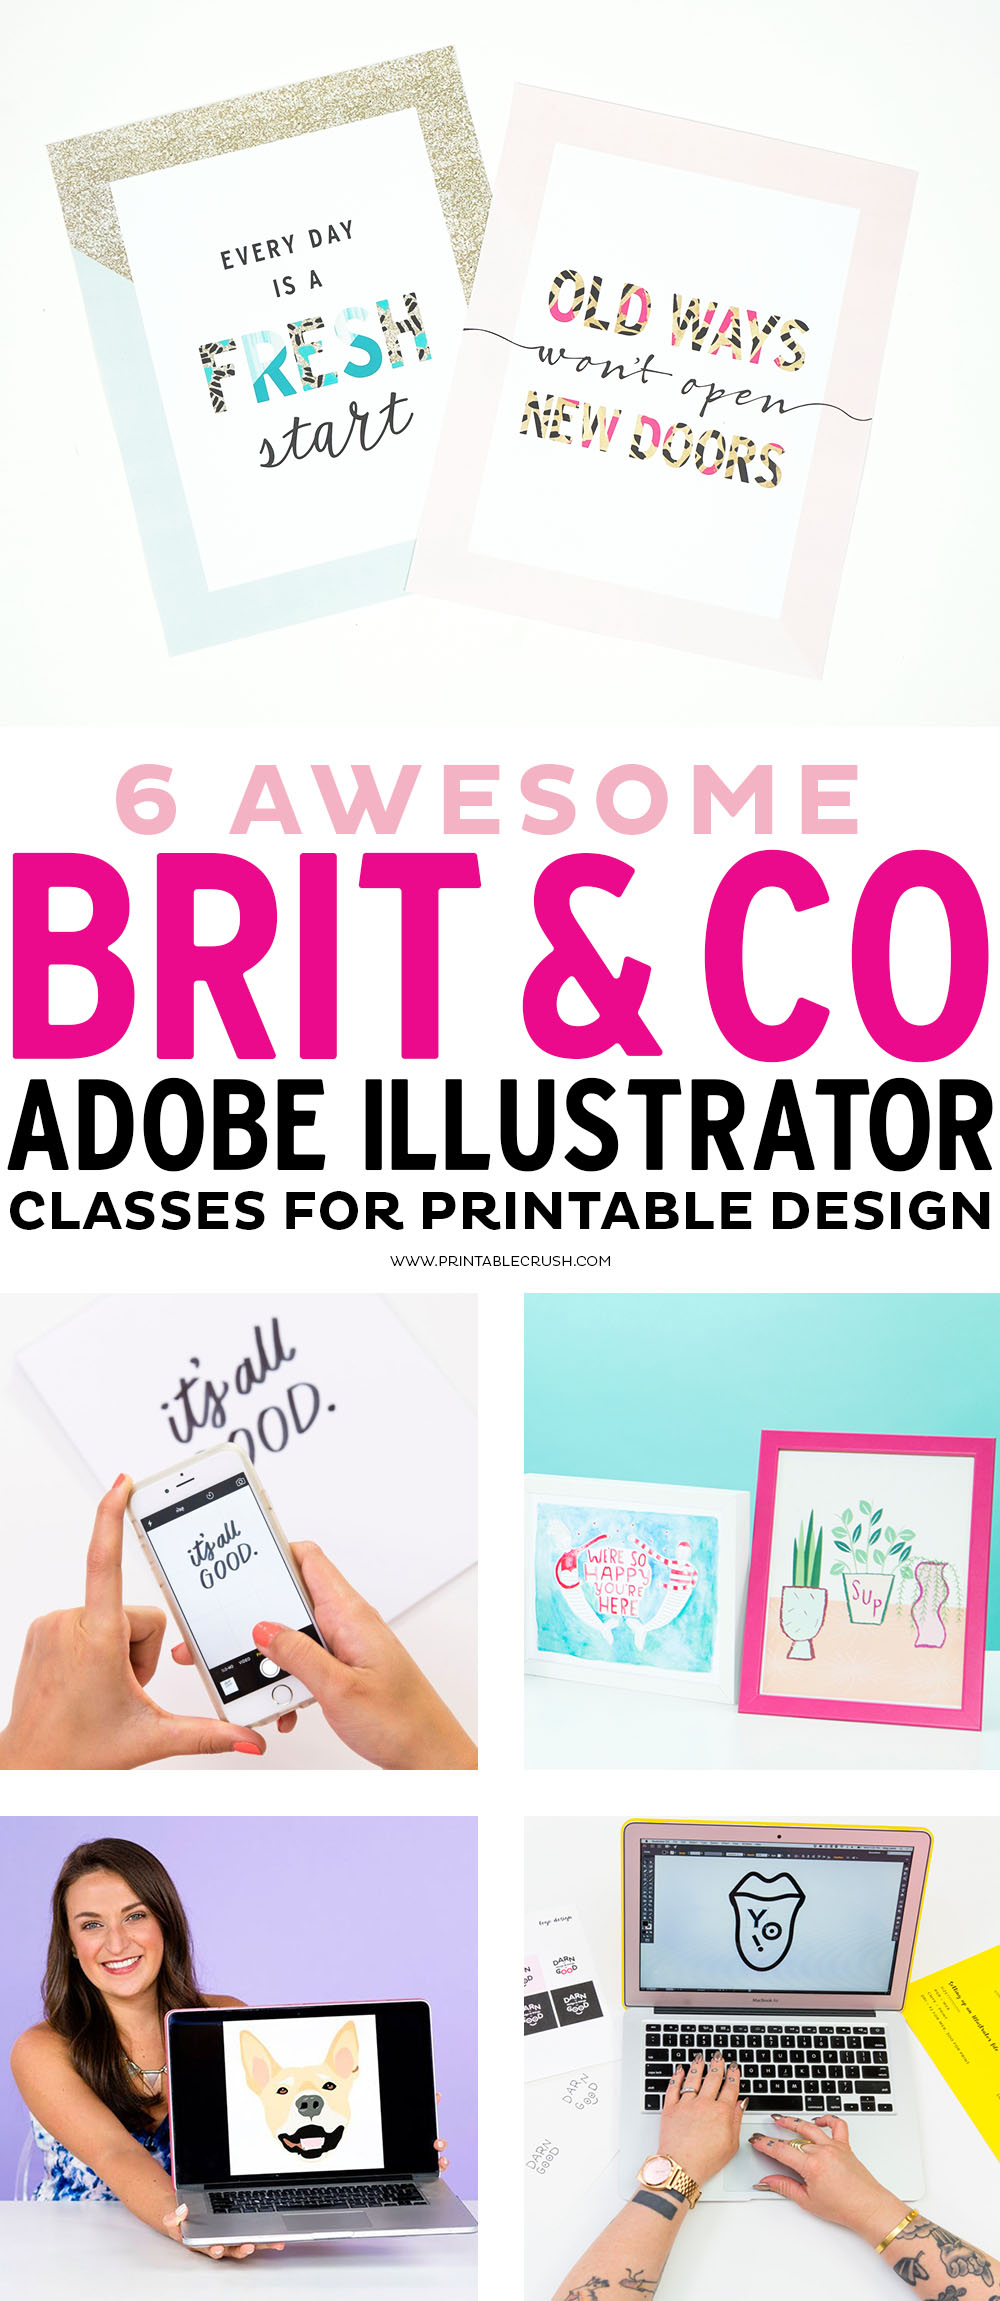 Check out these 7 Awesome Brit and Co Adobe Illustrator Classes for Printable Design! If you want to design printables for profit, for classrooms, or just because, these classes will help you become a pro!